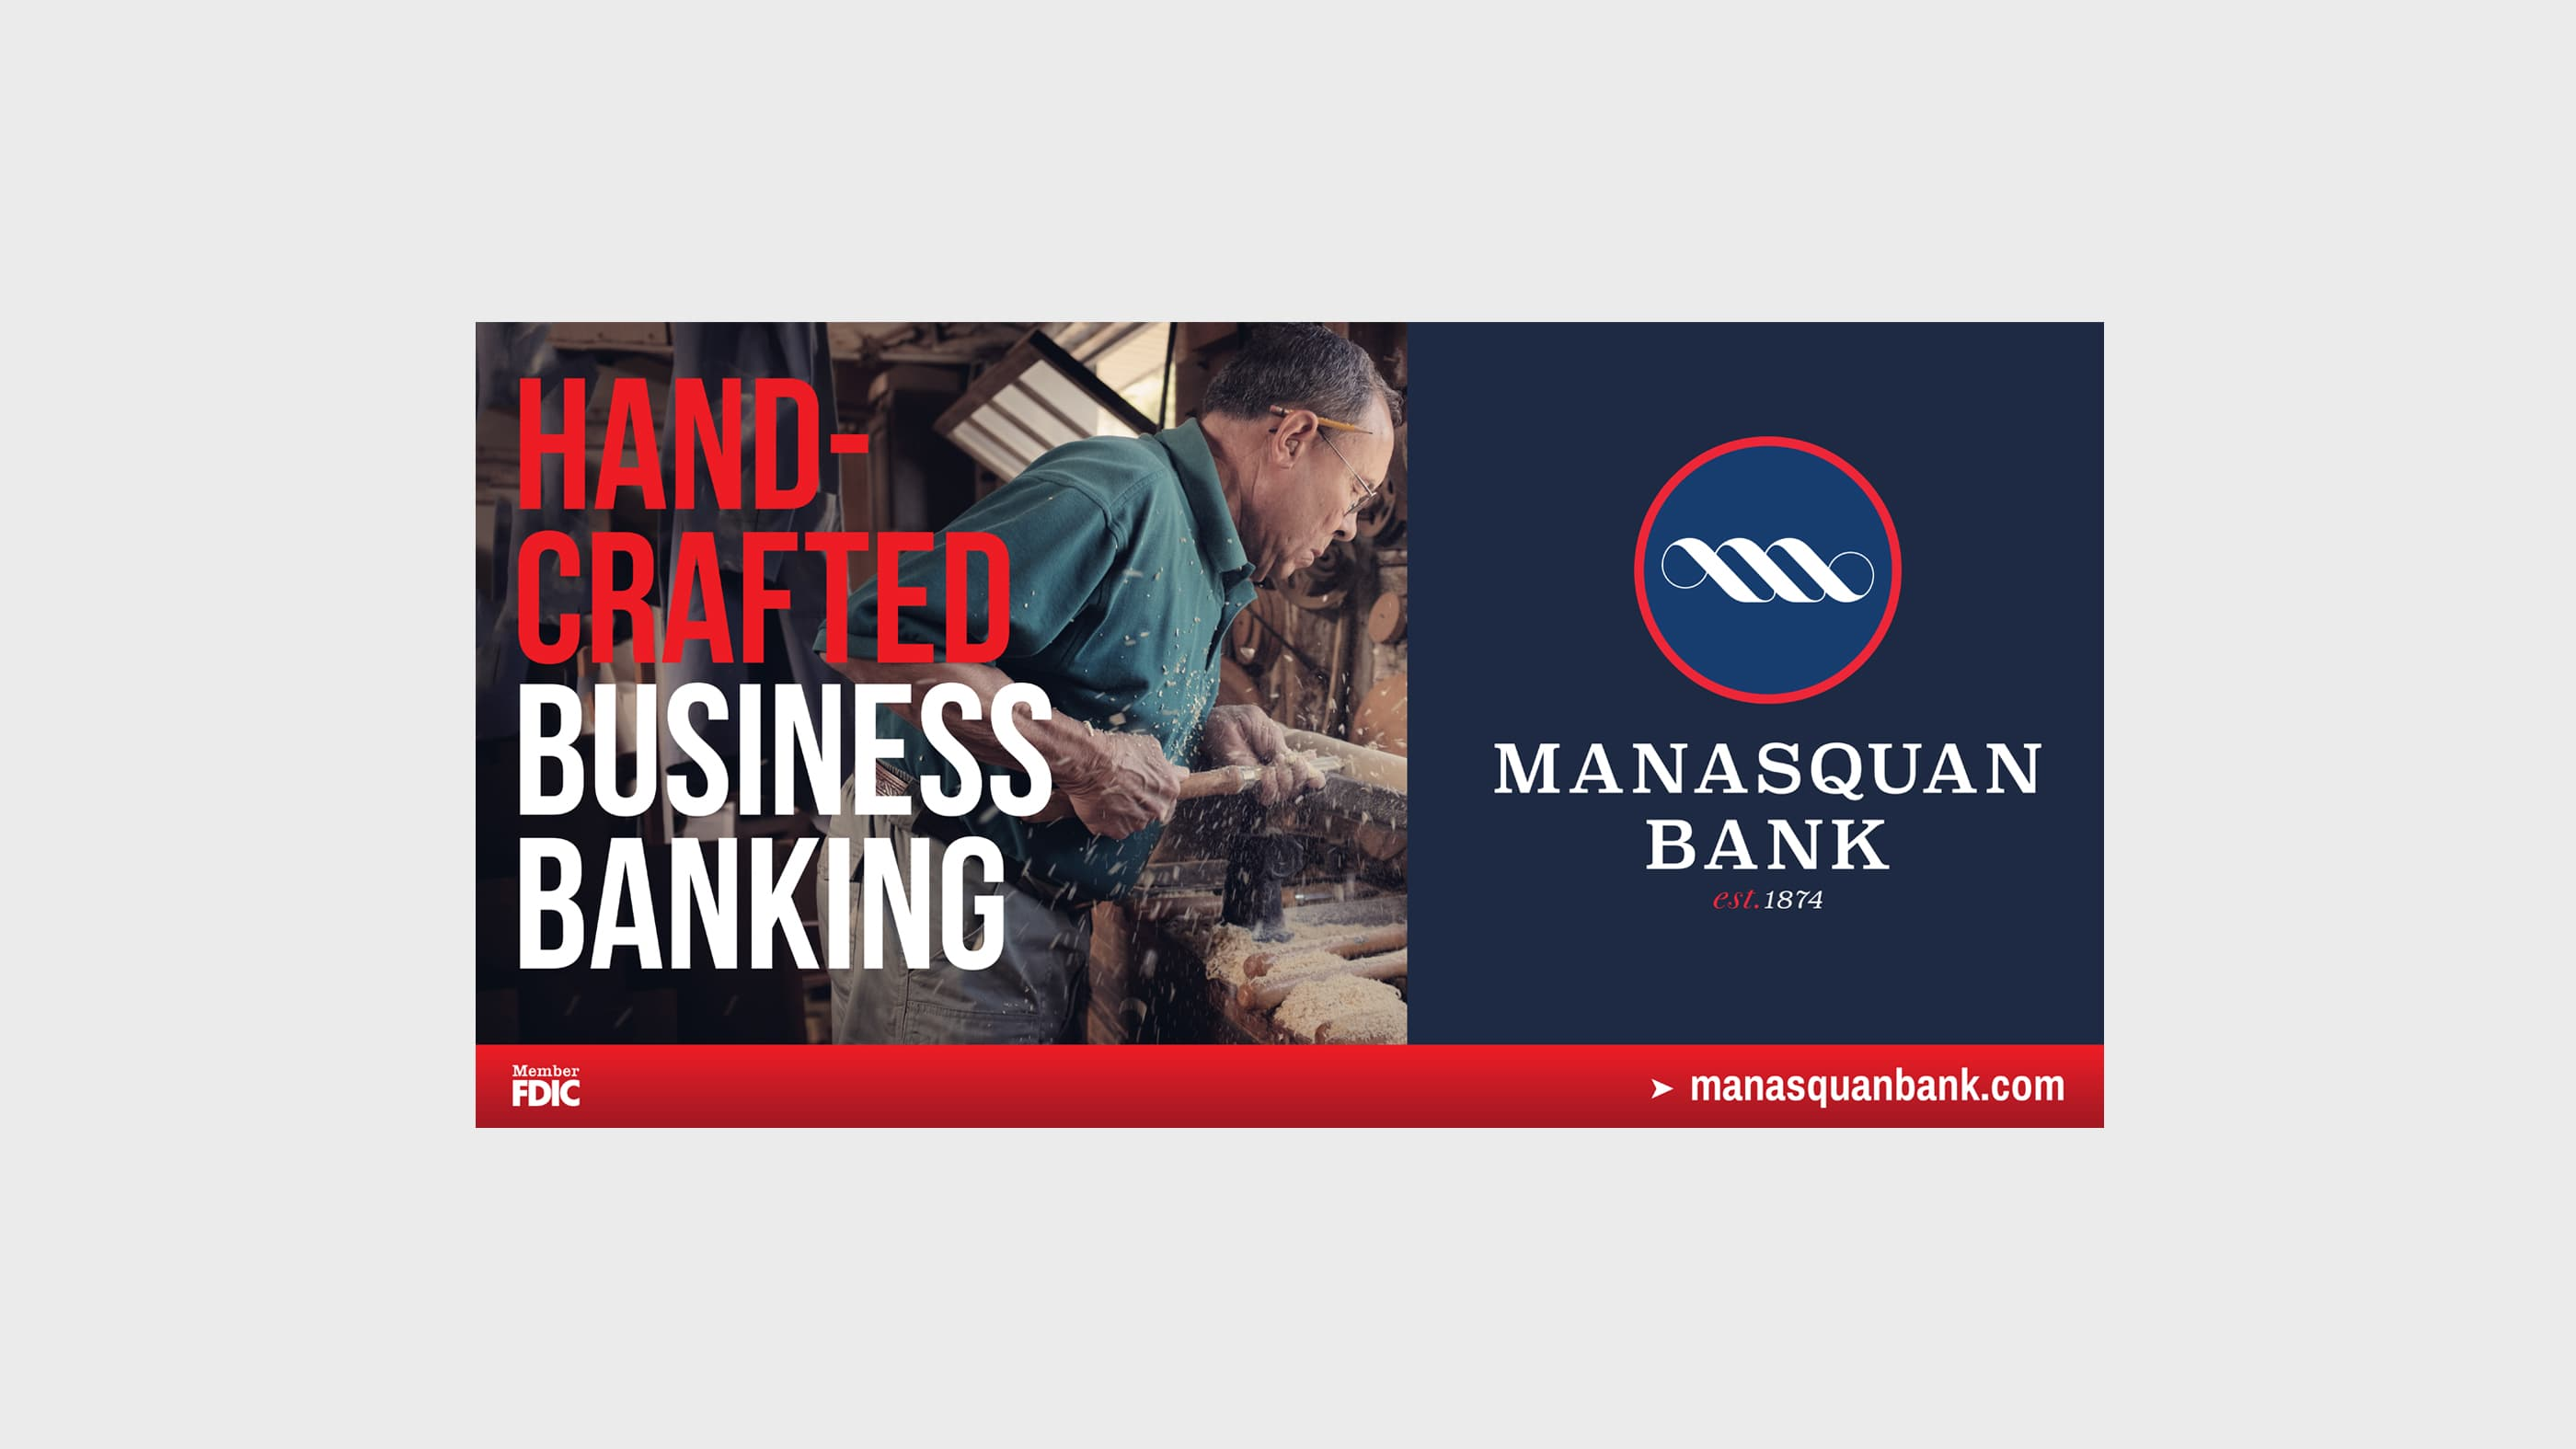 Manasquan Bank Billboard Handcrafted